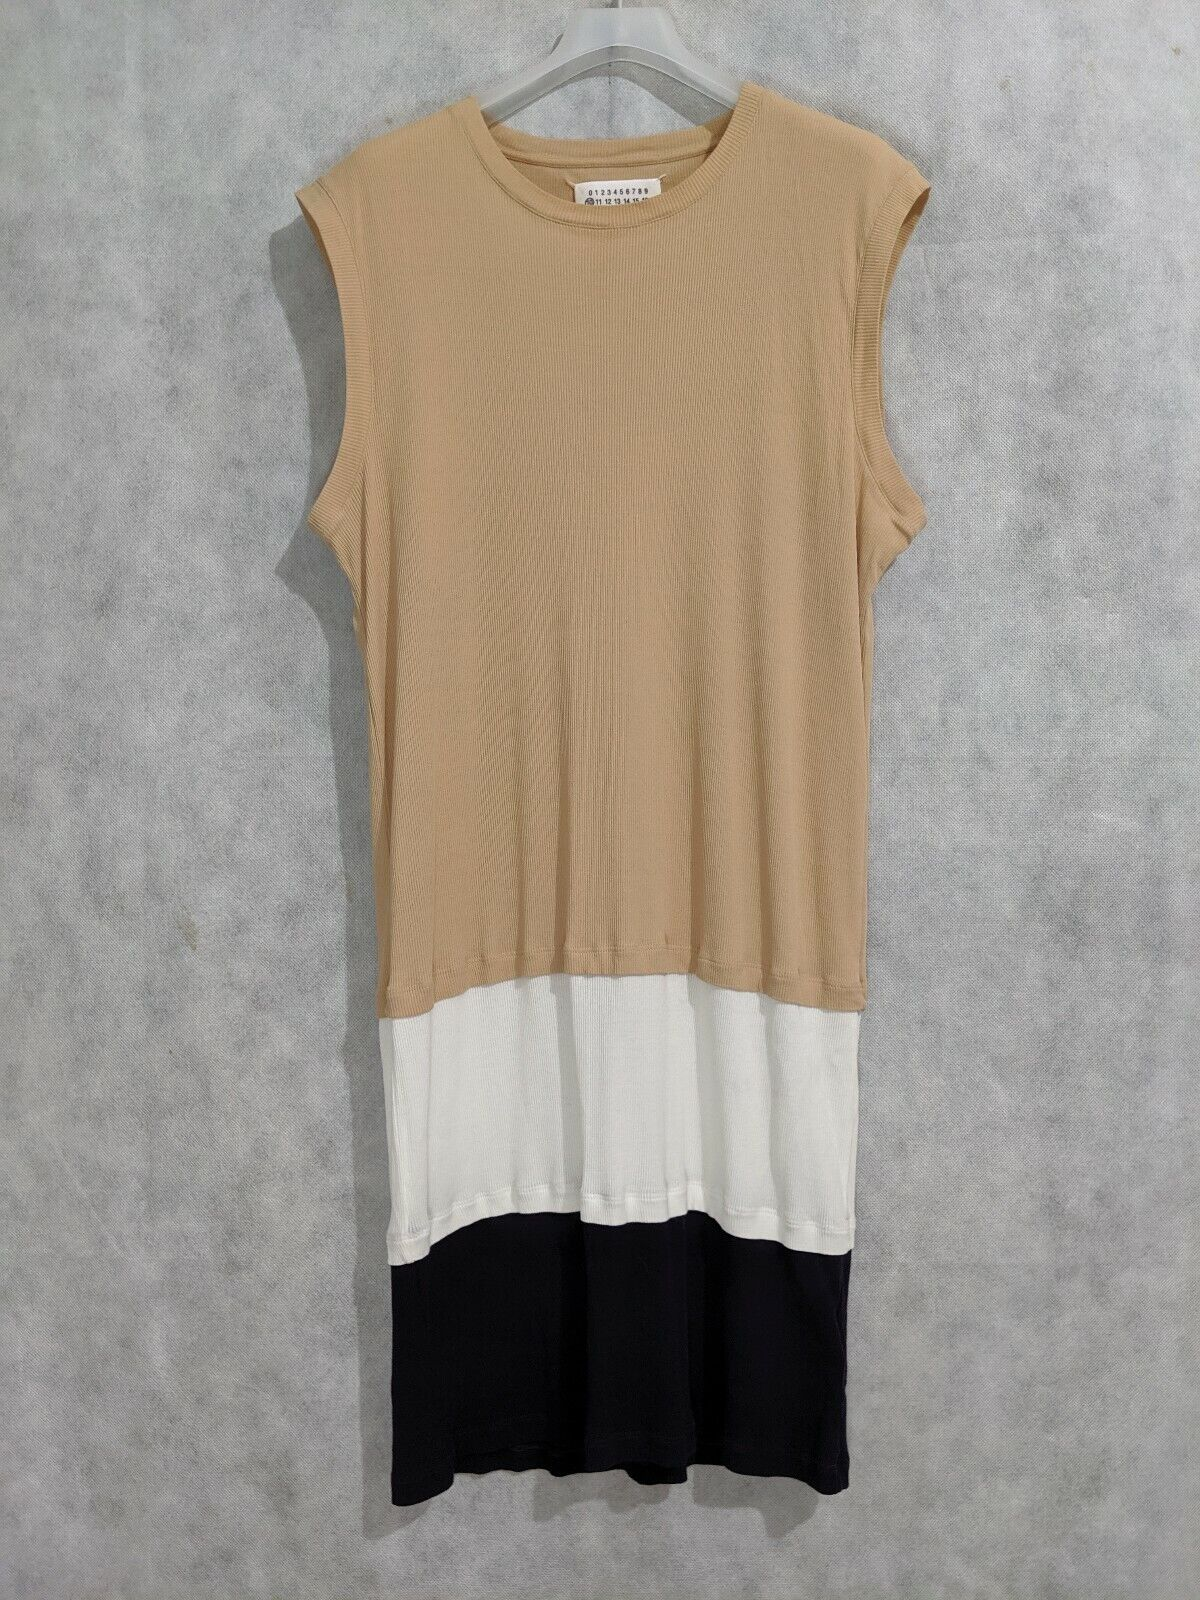 Margiela 10 Ribbed Stretch Farbeblock Extended Sleeveless hemd Dress 52